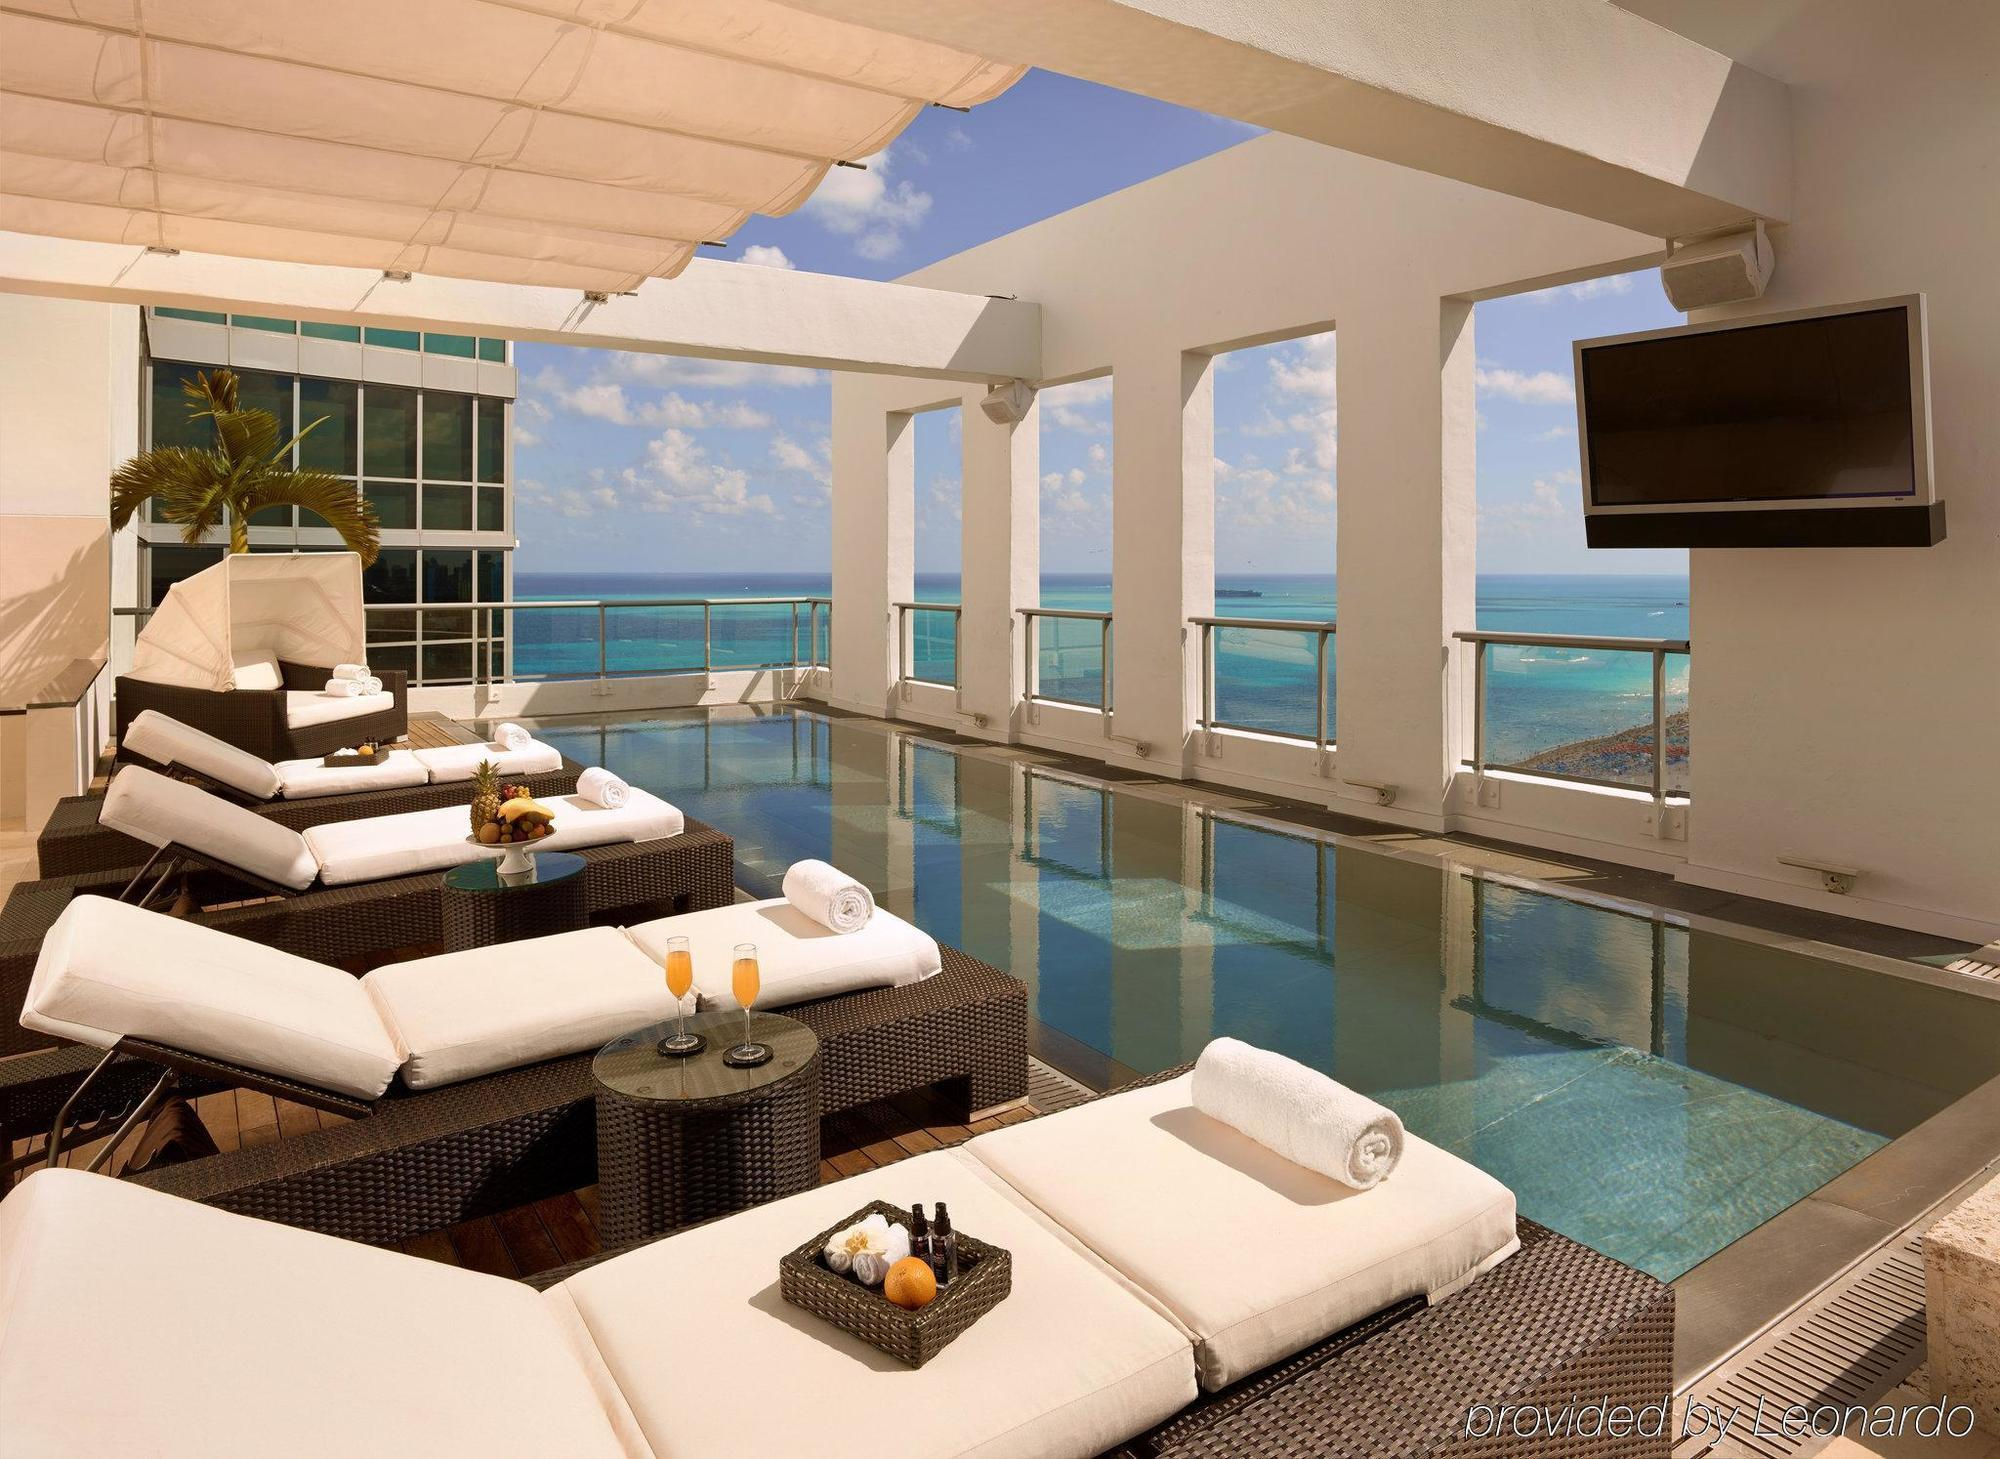 Top Hotel Suites in Miami Beach luxury furniture collection 5 New Additions to Luxxu's Luxury Furniture Collection Top Hotel Suites in Miami Beach luxury furniture collection 5 New Additions to Luxxu's Luxury Furniture Collection Top Hotel Suites in Miami Beach